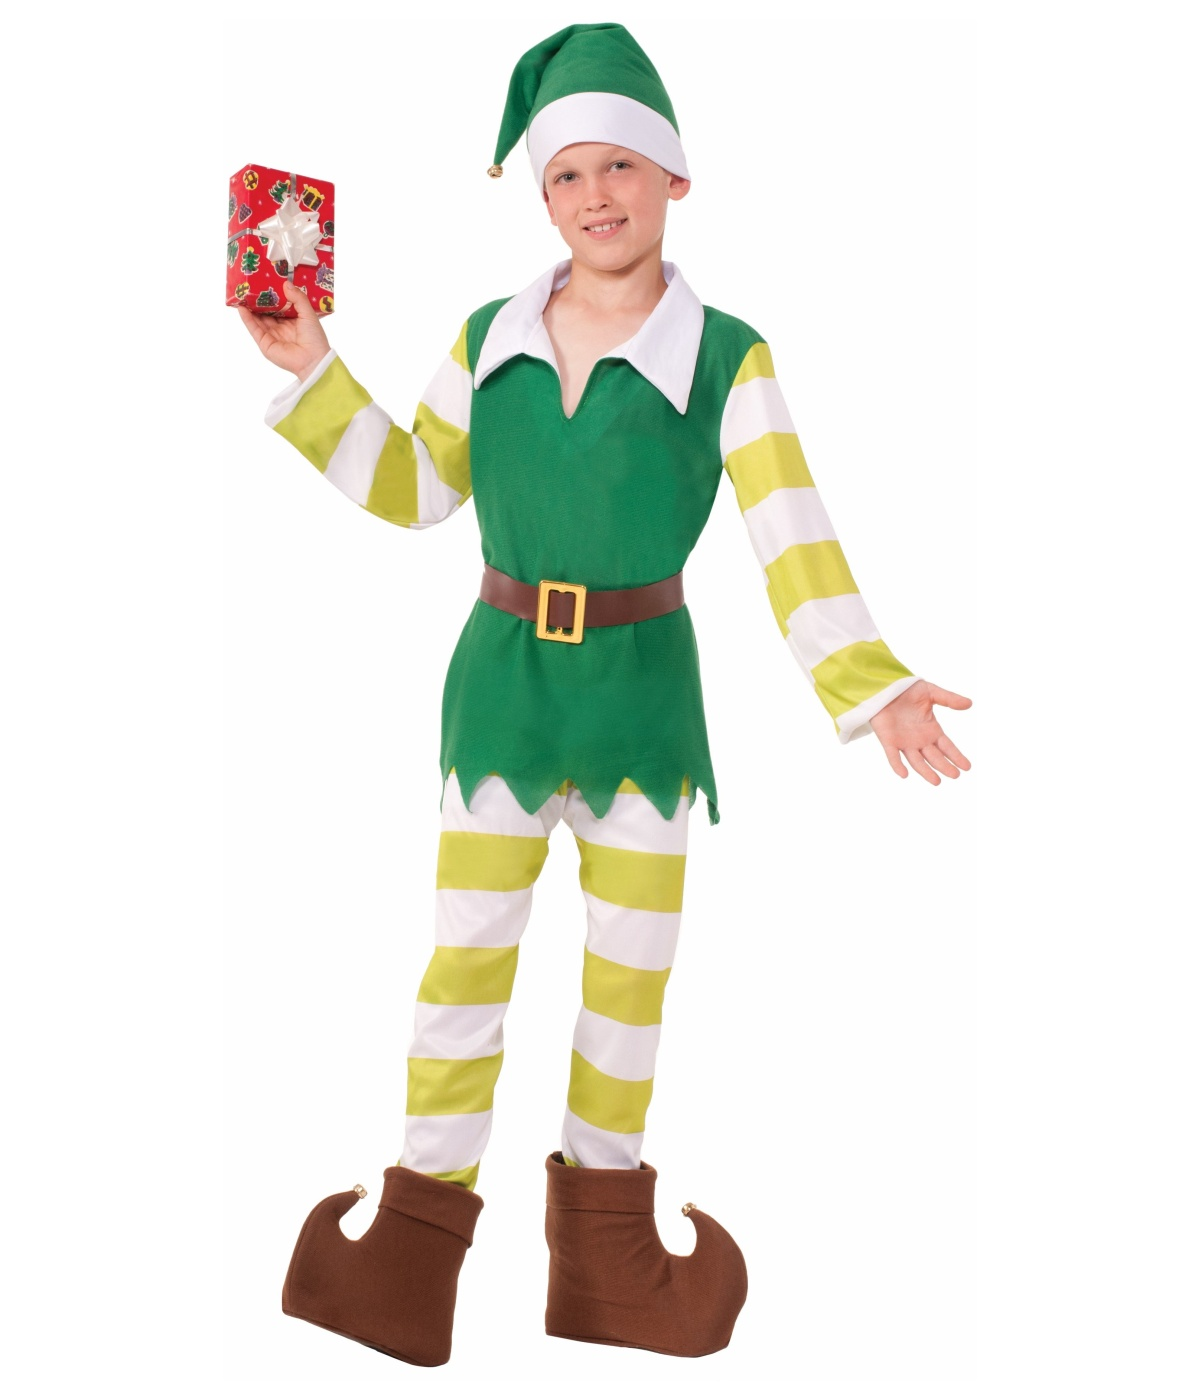 Join Santa's workshop workforce in this jolly Elf Costume! Our Elf Costume for children features a red and green split-tone polyester tunic with gold trim and jester collar with tiny jingle bell tips, matching pants and fabric elf shoes with pom-pom accents, and a red elf hat with green flaps with jingle bell tips.